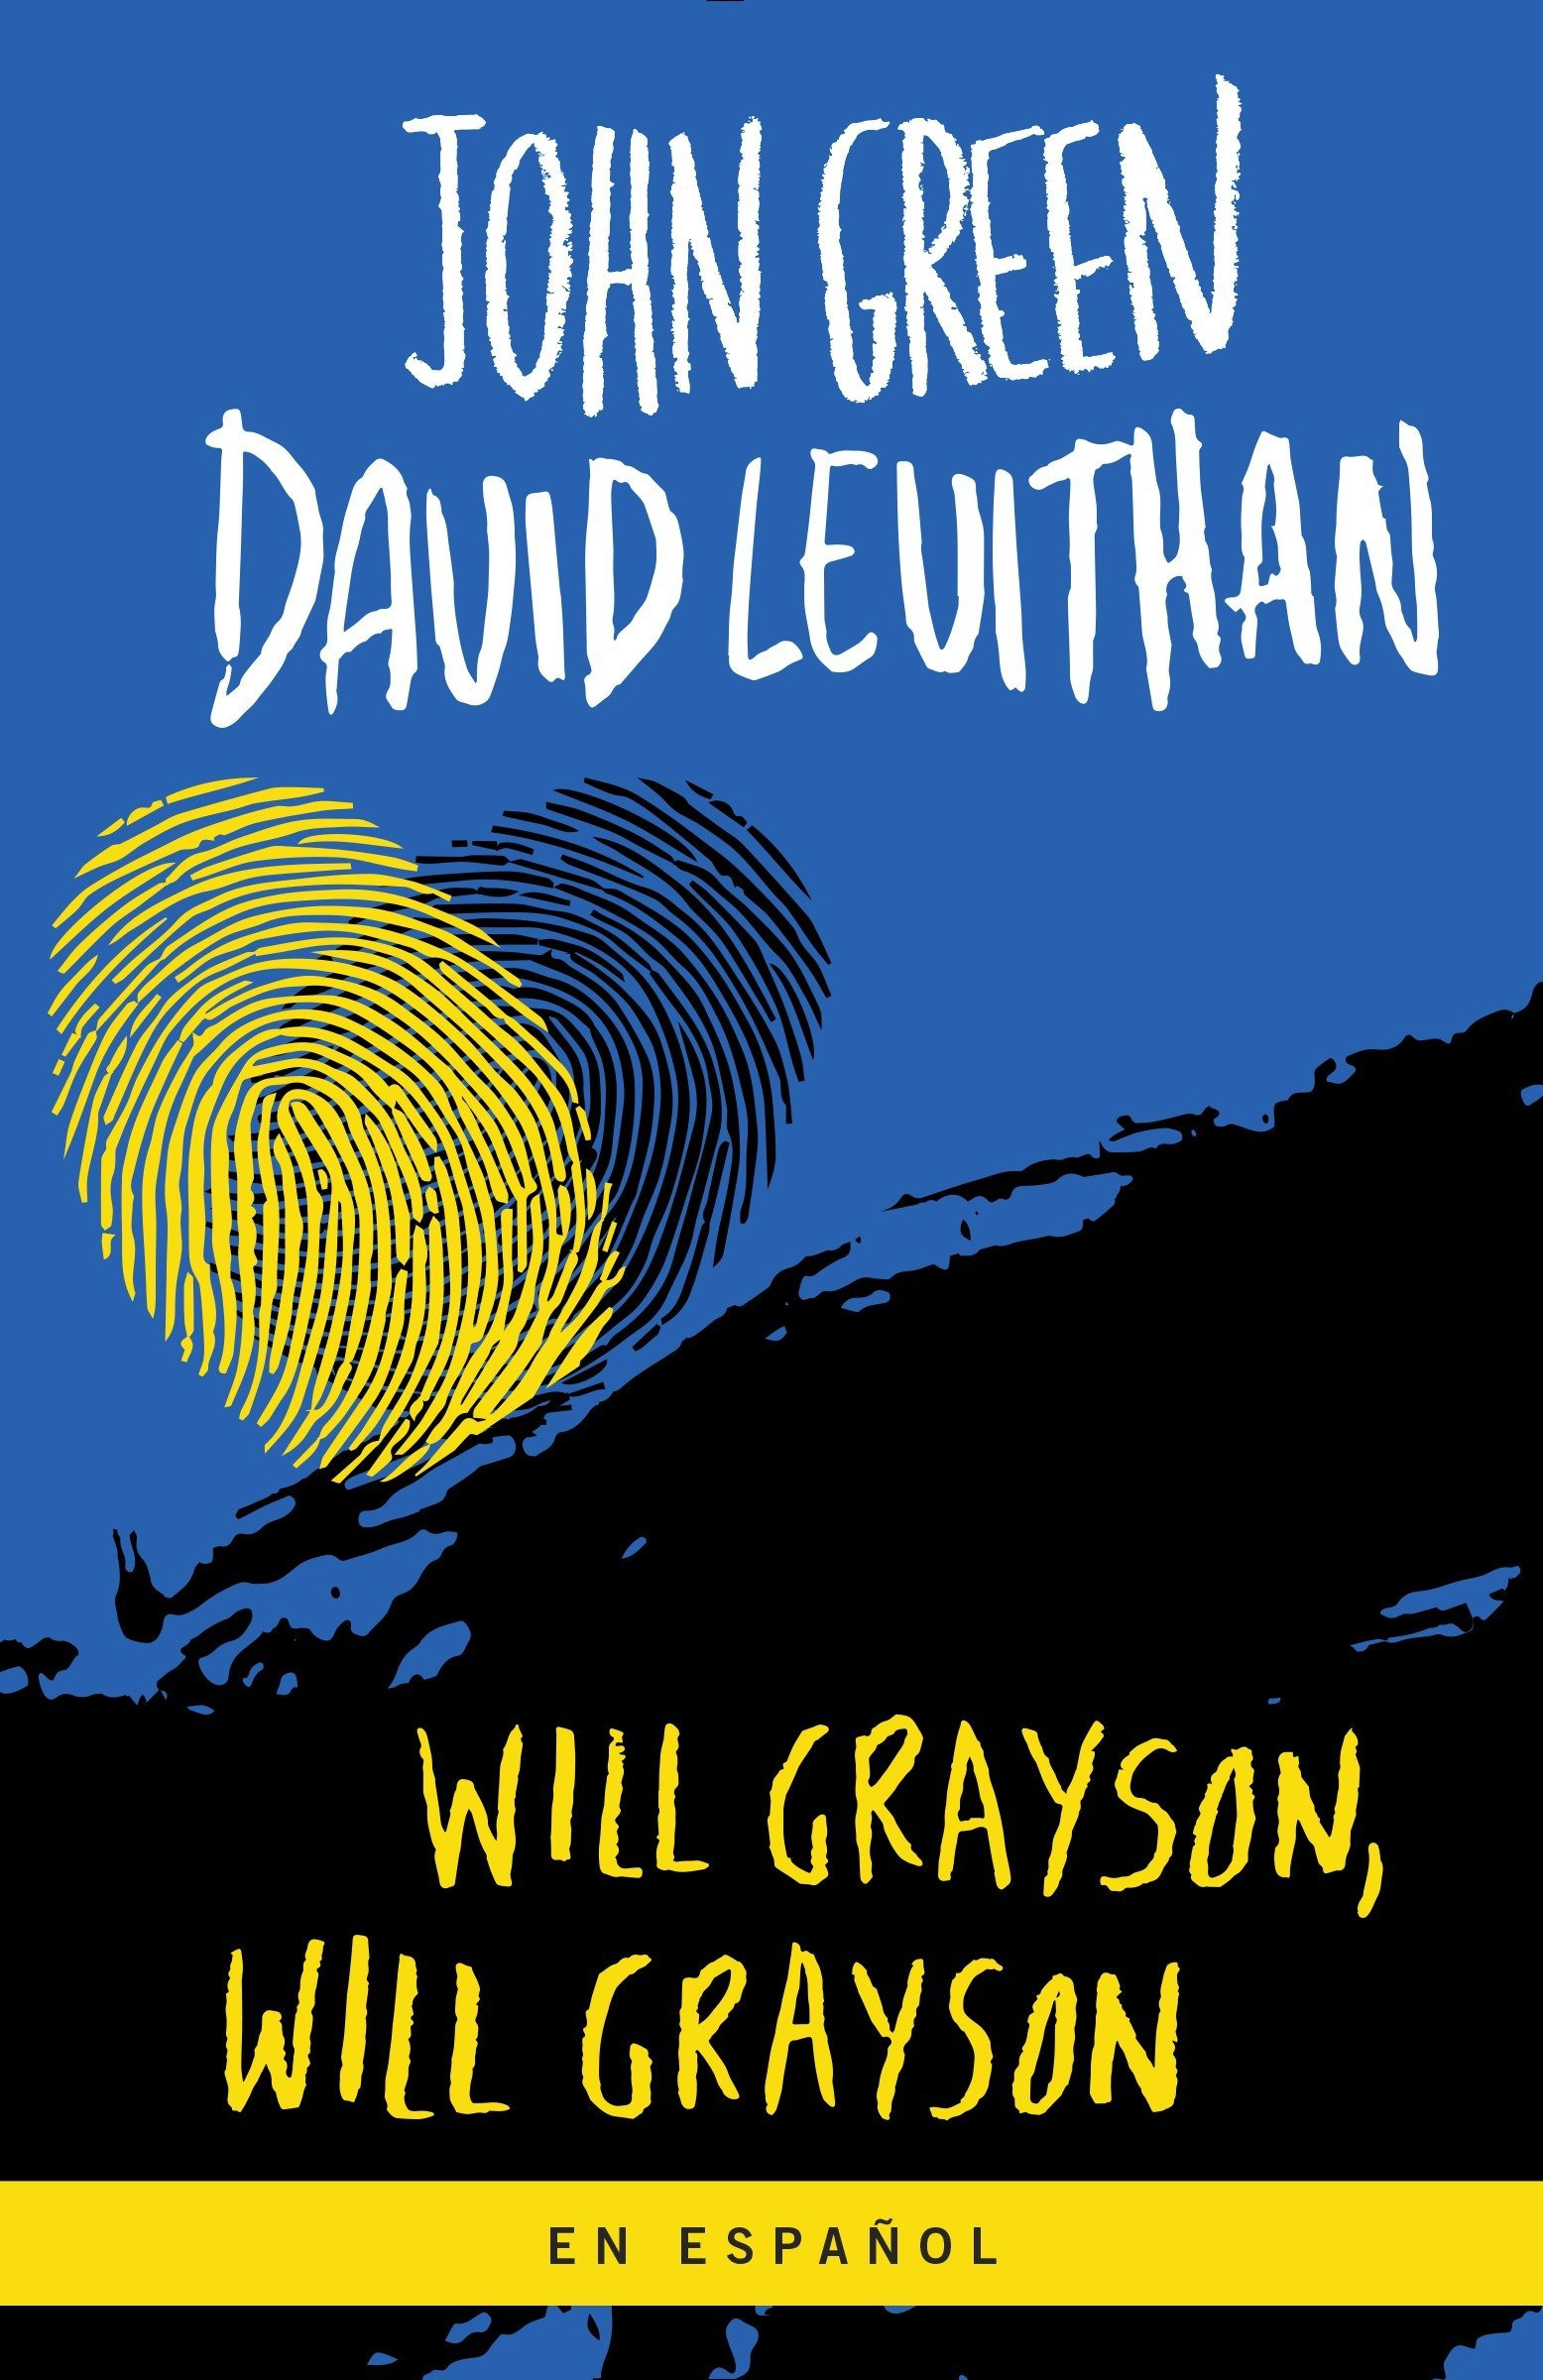 Will Grayson, Will Grayson (Spanish Edition): John Green, David Levithan: 9781101910702: Amazon.com: Books